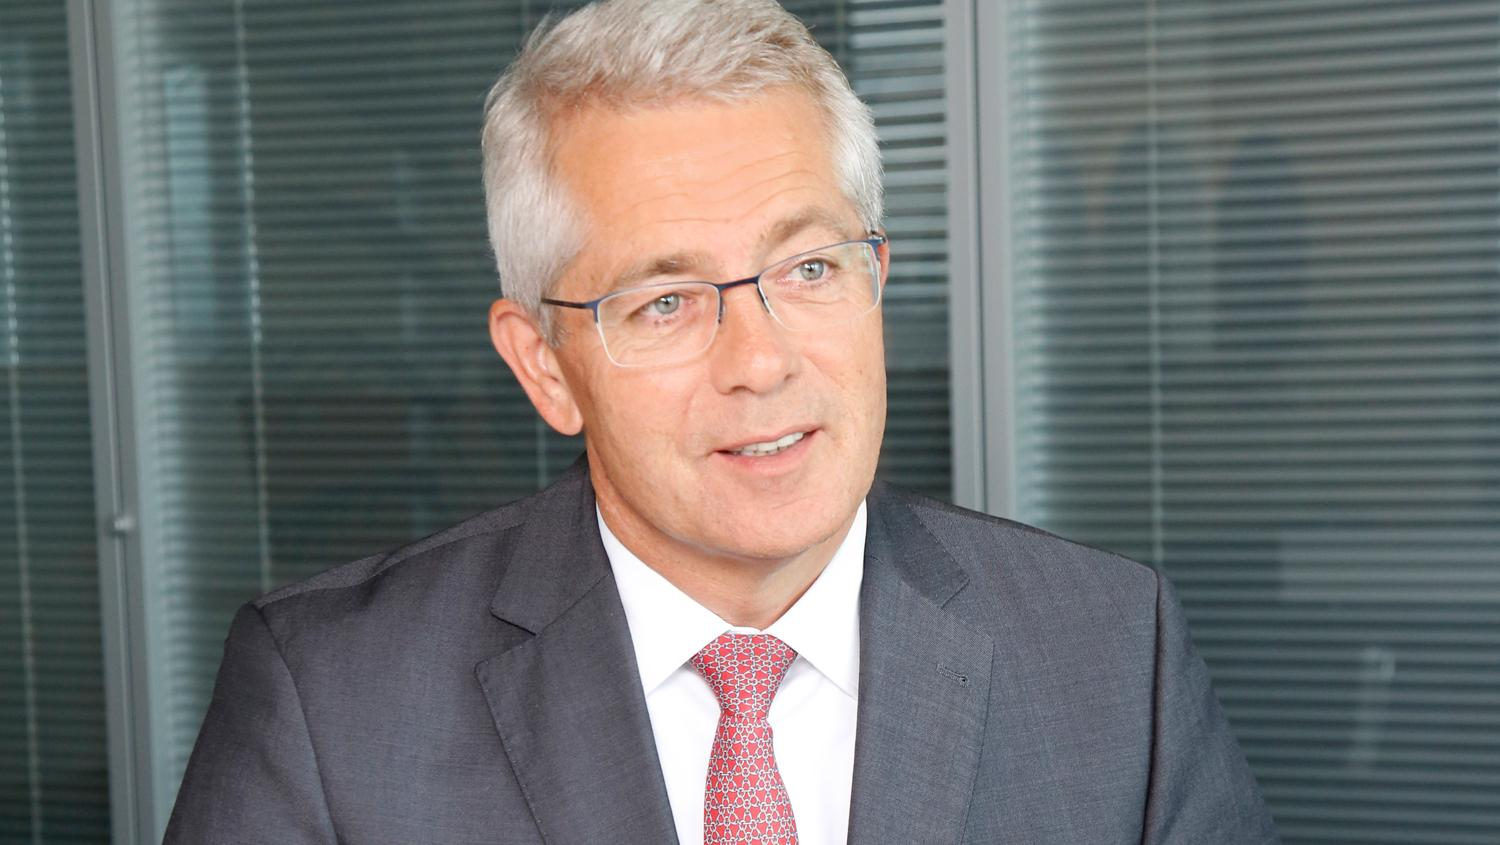 Slightly optimistic: Fraport CEO Stefan Schulte hopes passenger numbers will catch up in the second half of 2021.